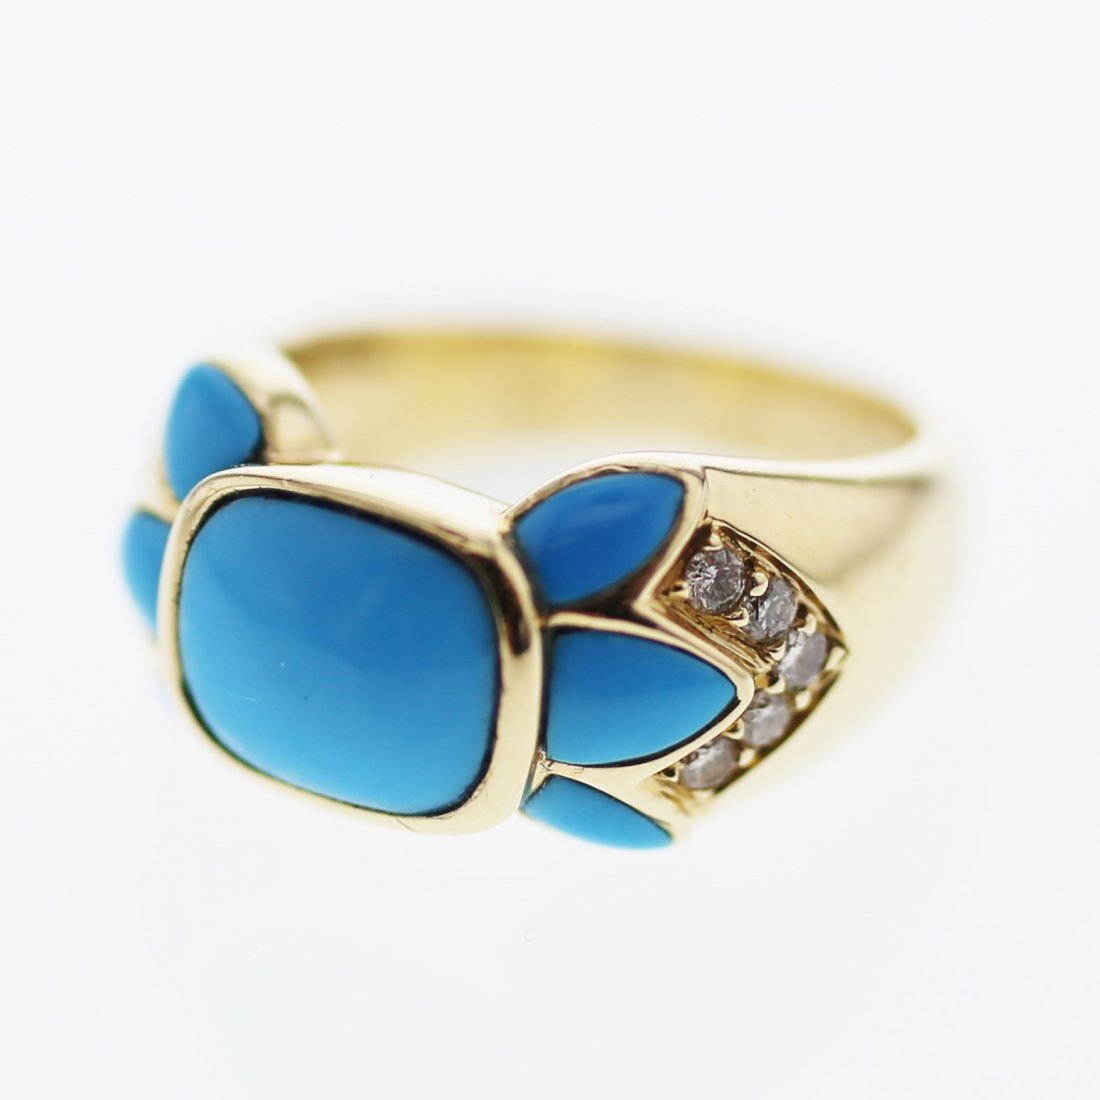 Cushion Turquoise w/ Diamond accent Ring in 14K Yellow